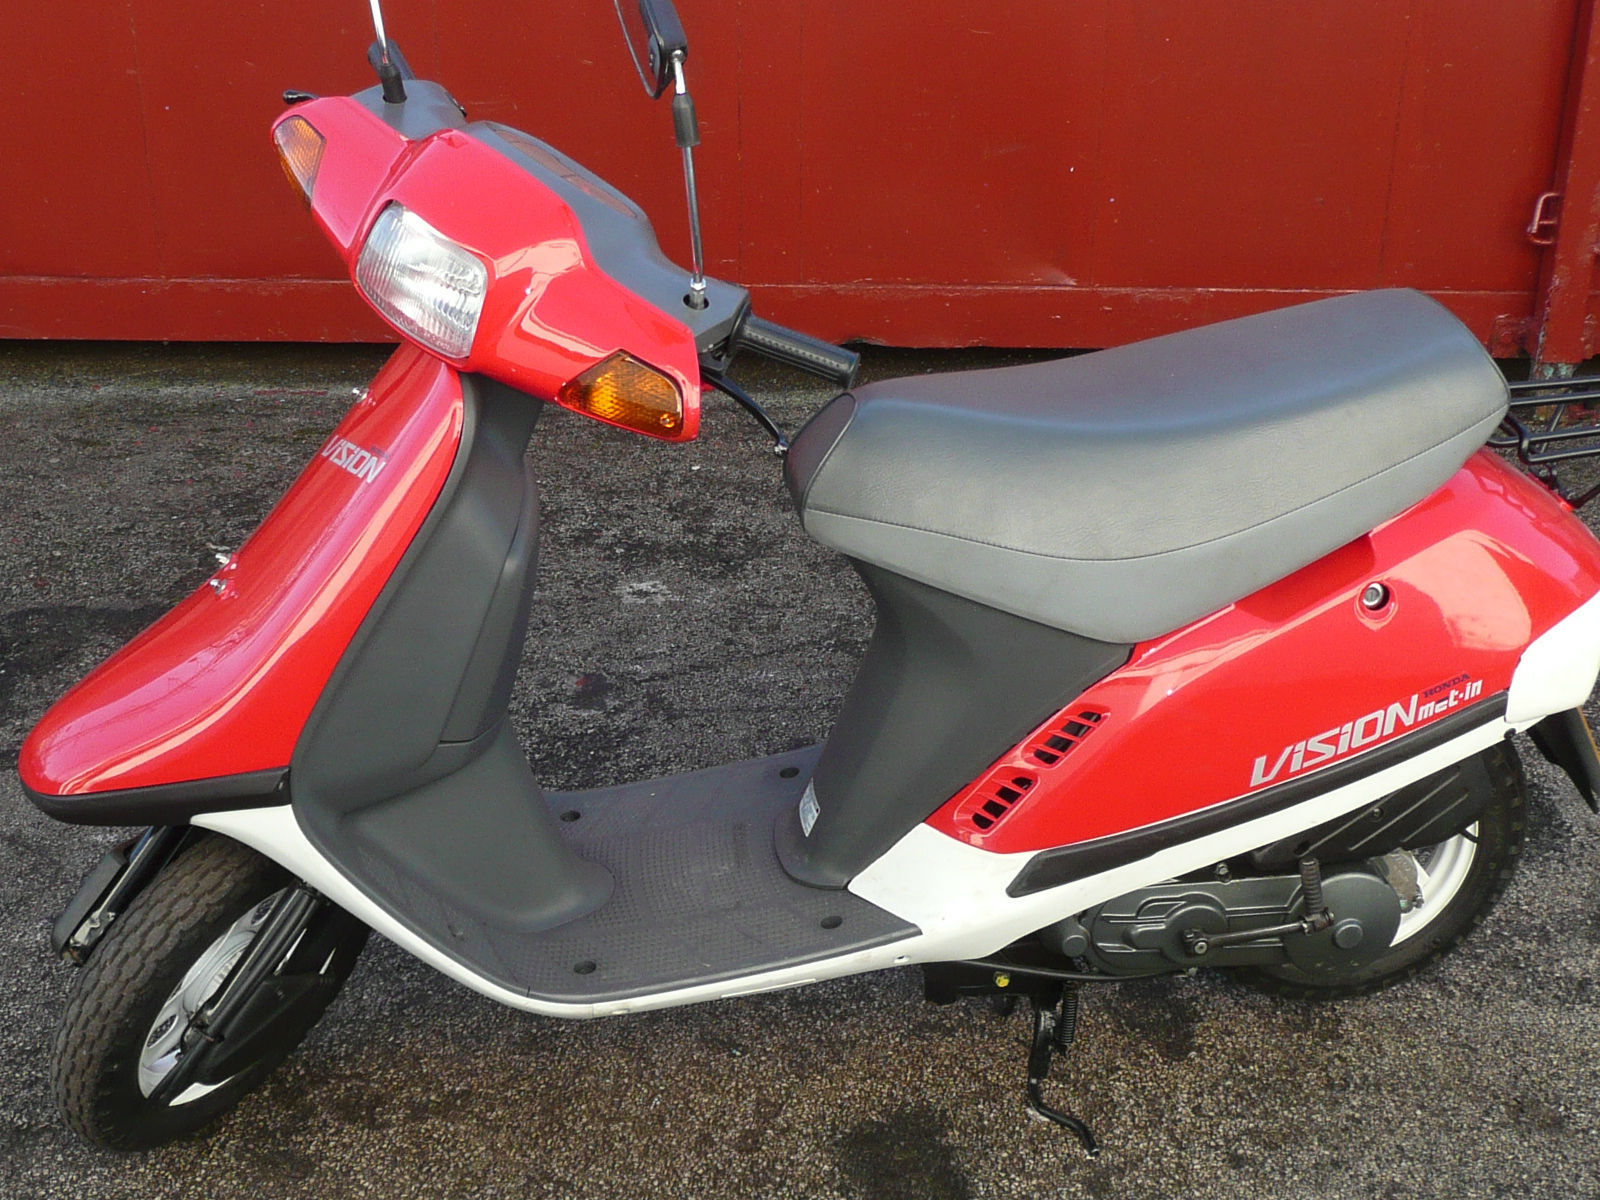 honda vision 50cc sa50 j in red low miles immaculate condition. Black Bedroom Furniture Sets. Home Design Ideas